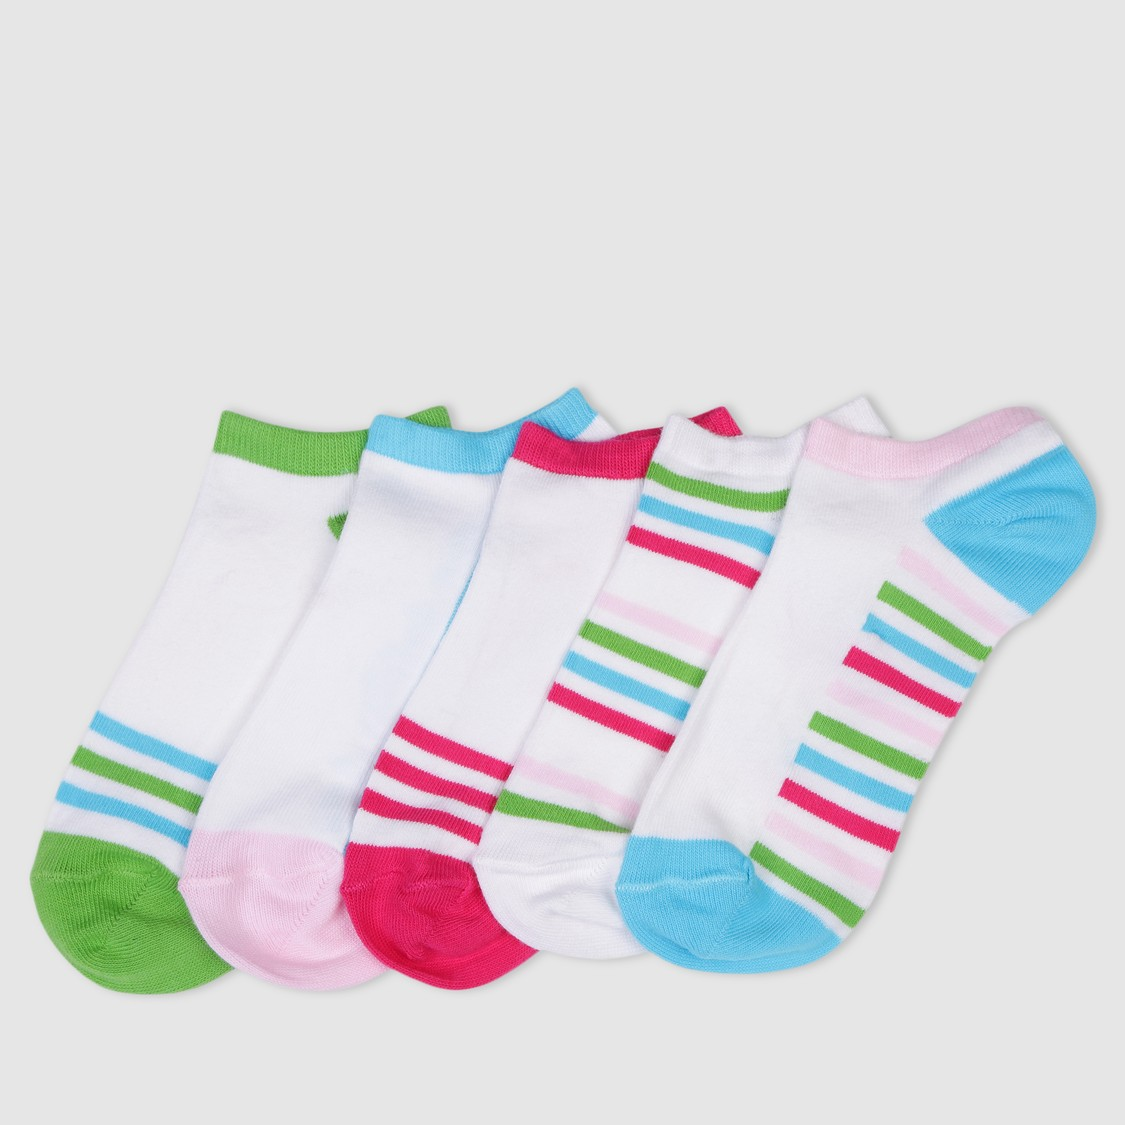 Striped Ankle Socks - Set of 5